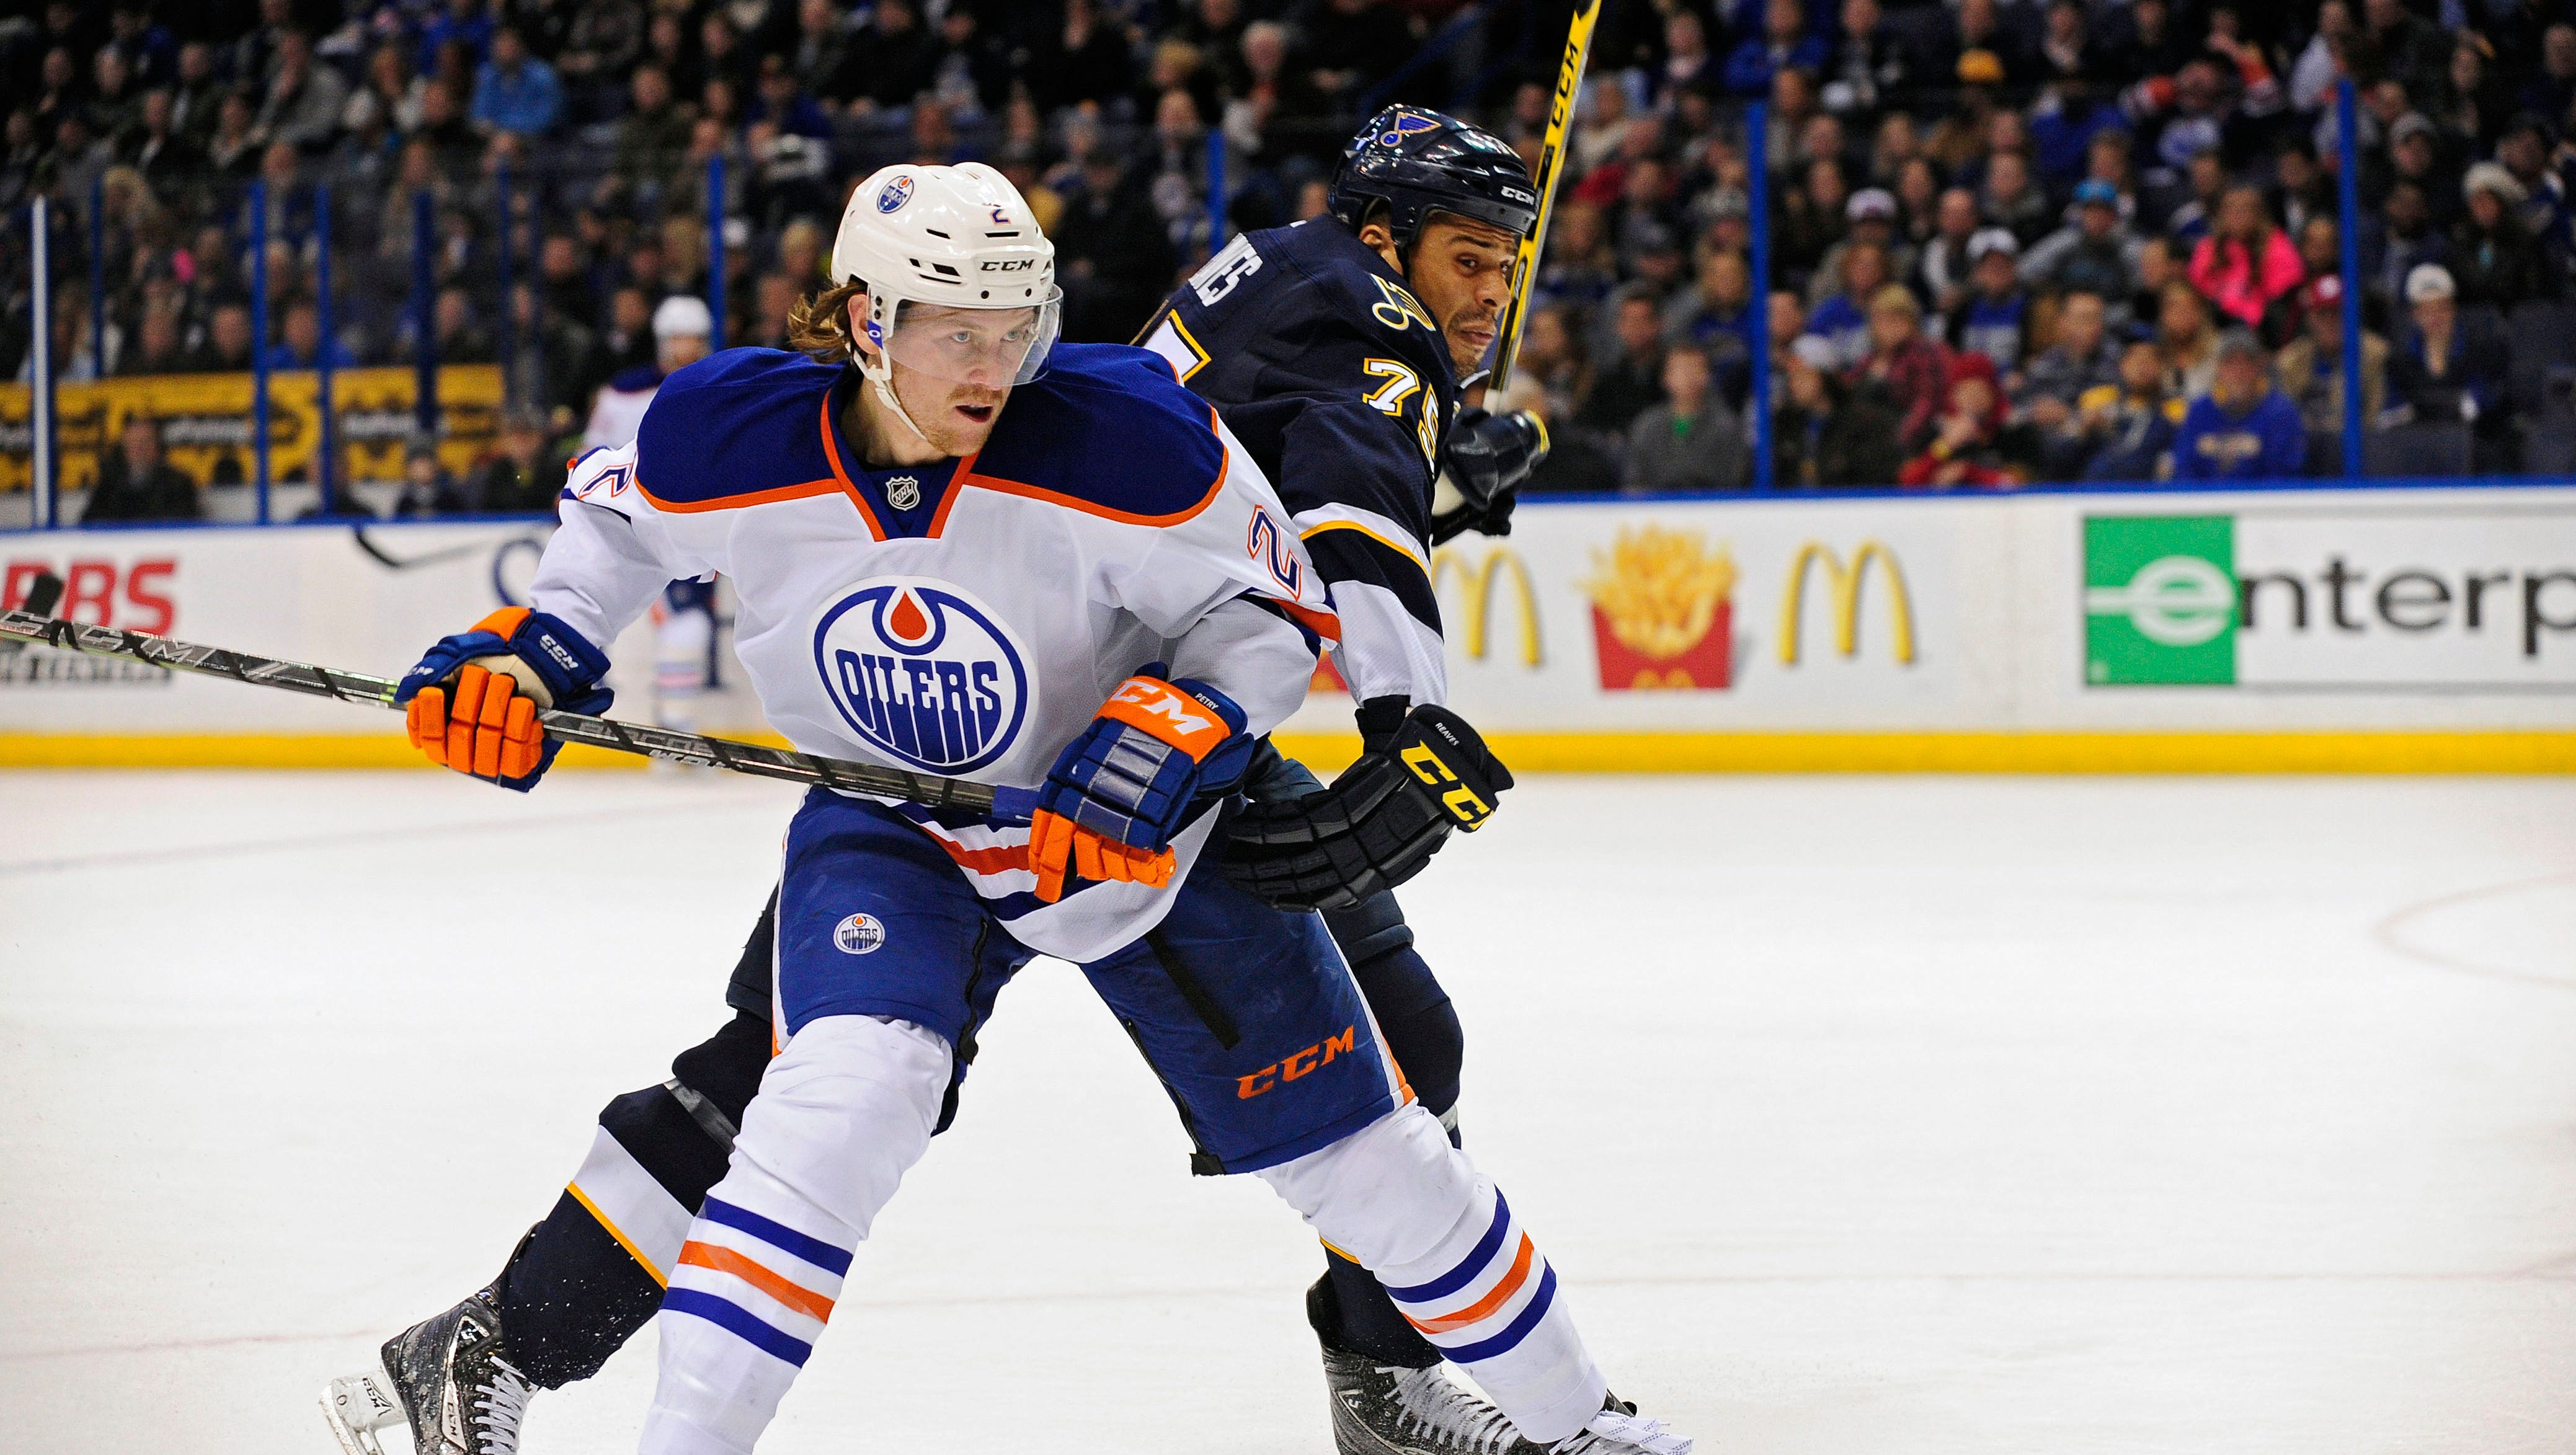 Canadiens Acquire Jeff Petry From Oilers For Draft Picks